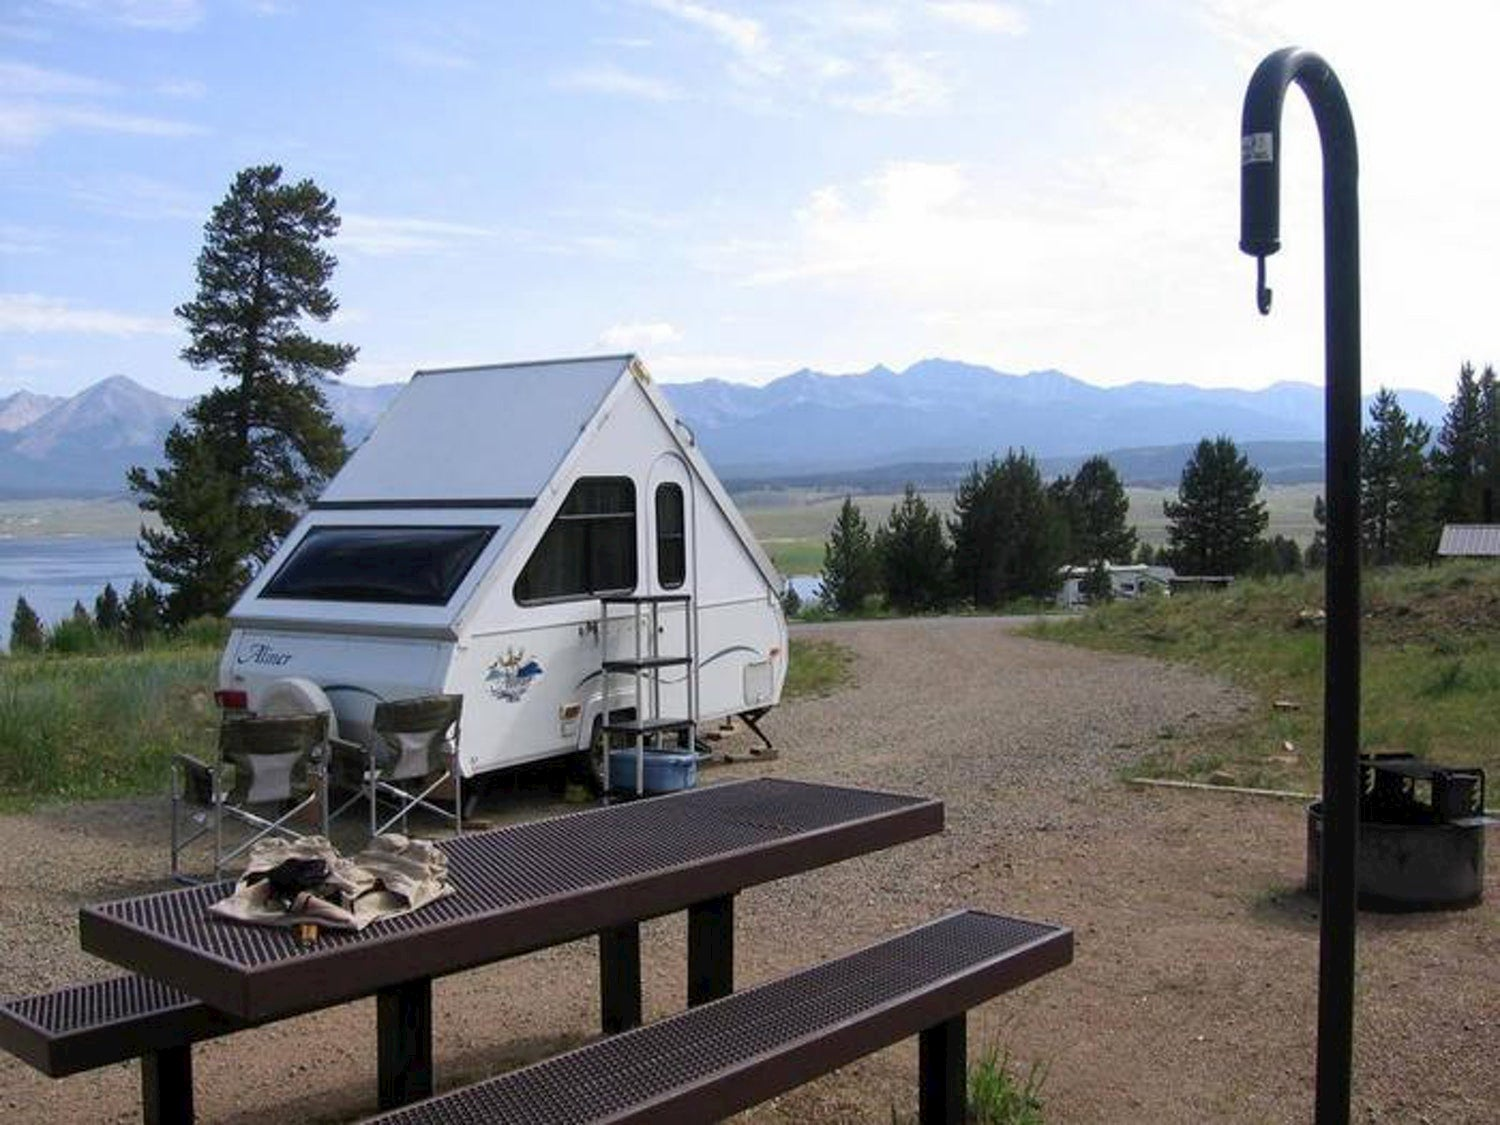 tow camper trailer parked at lakeside campsite with mountains in the background.